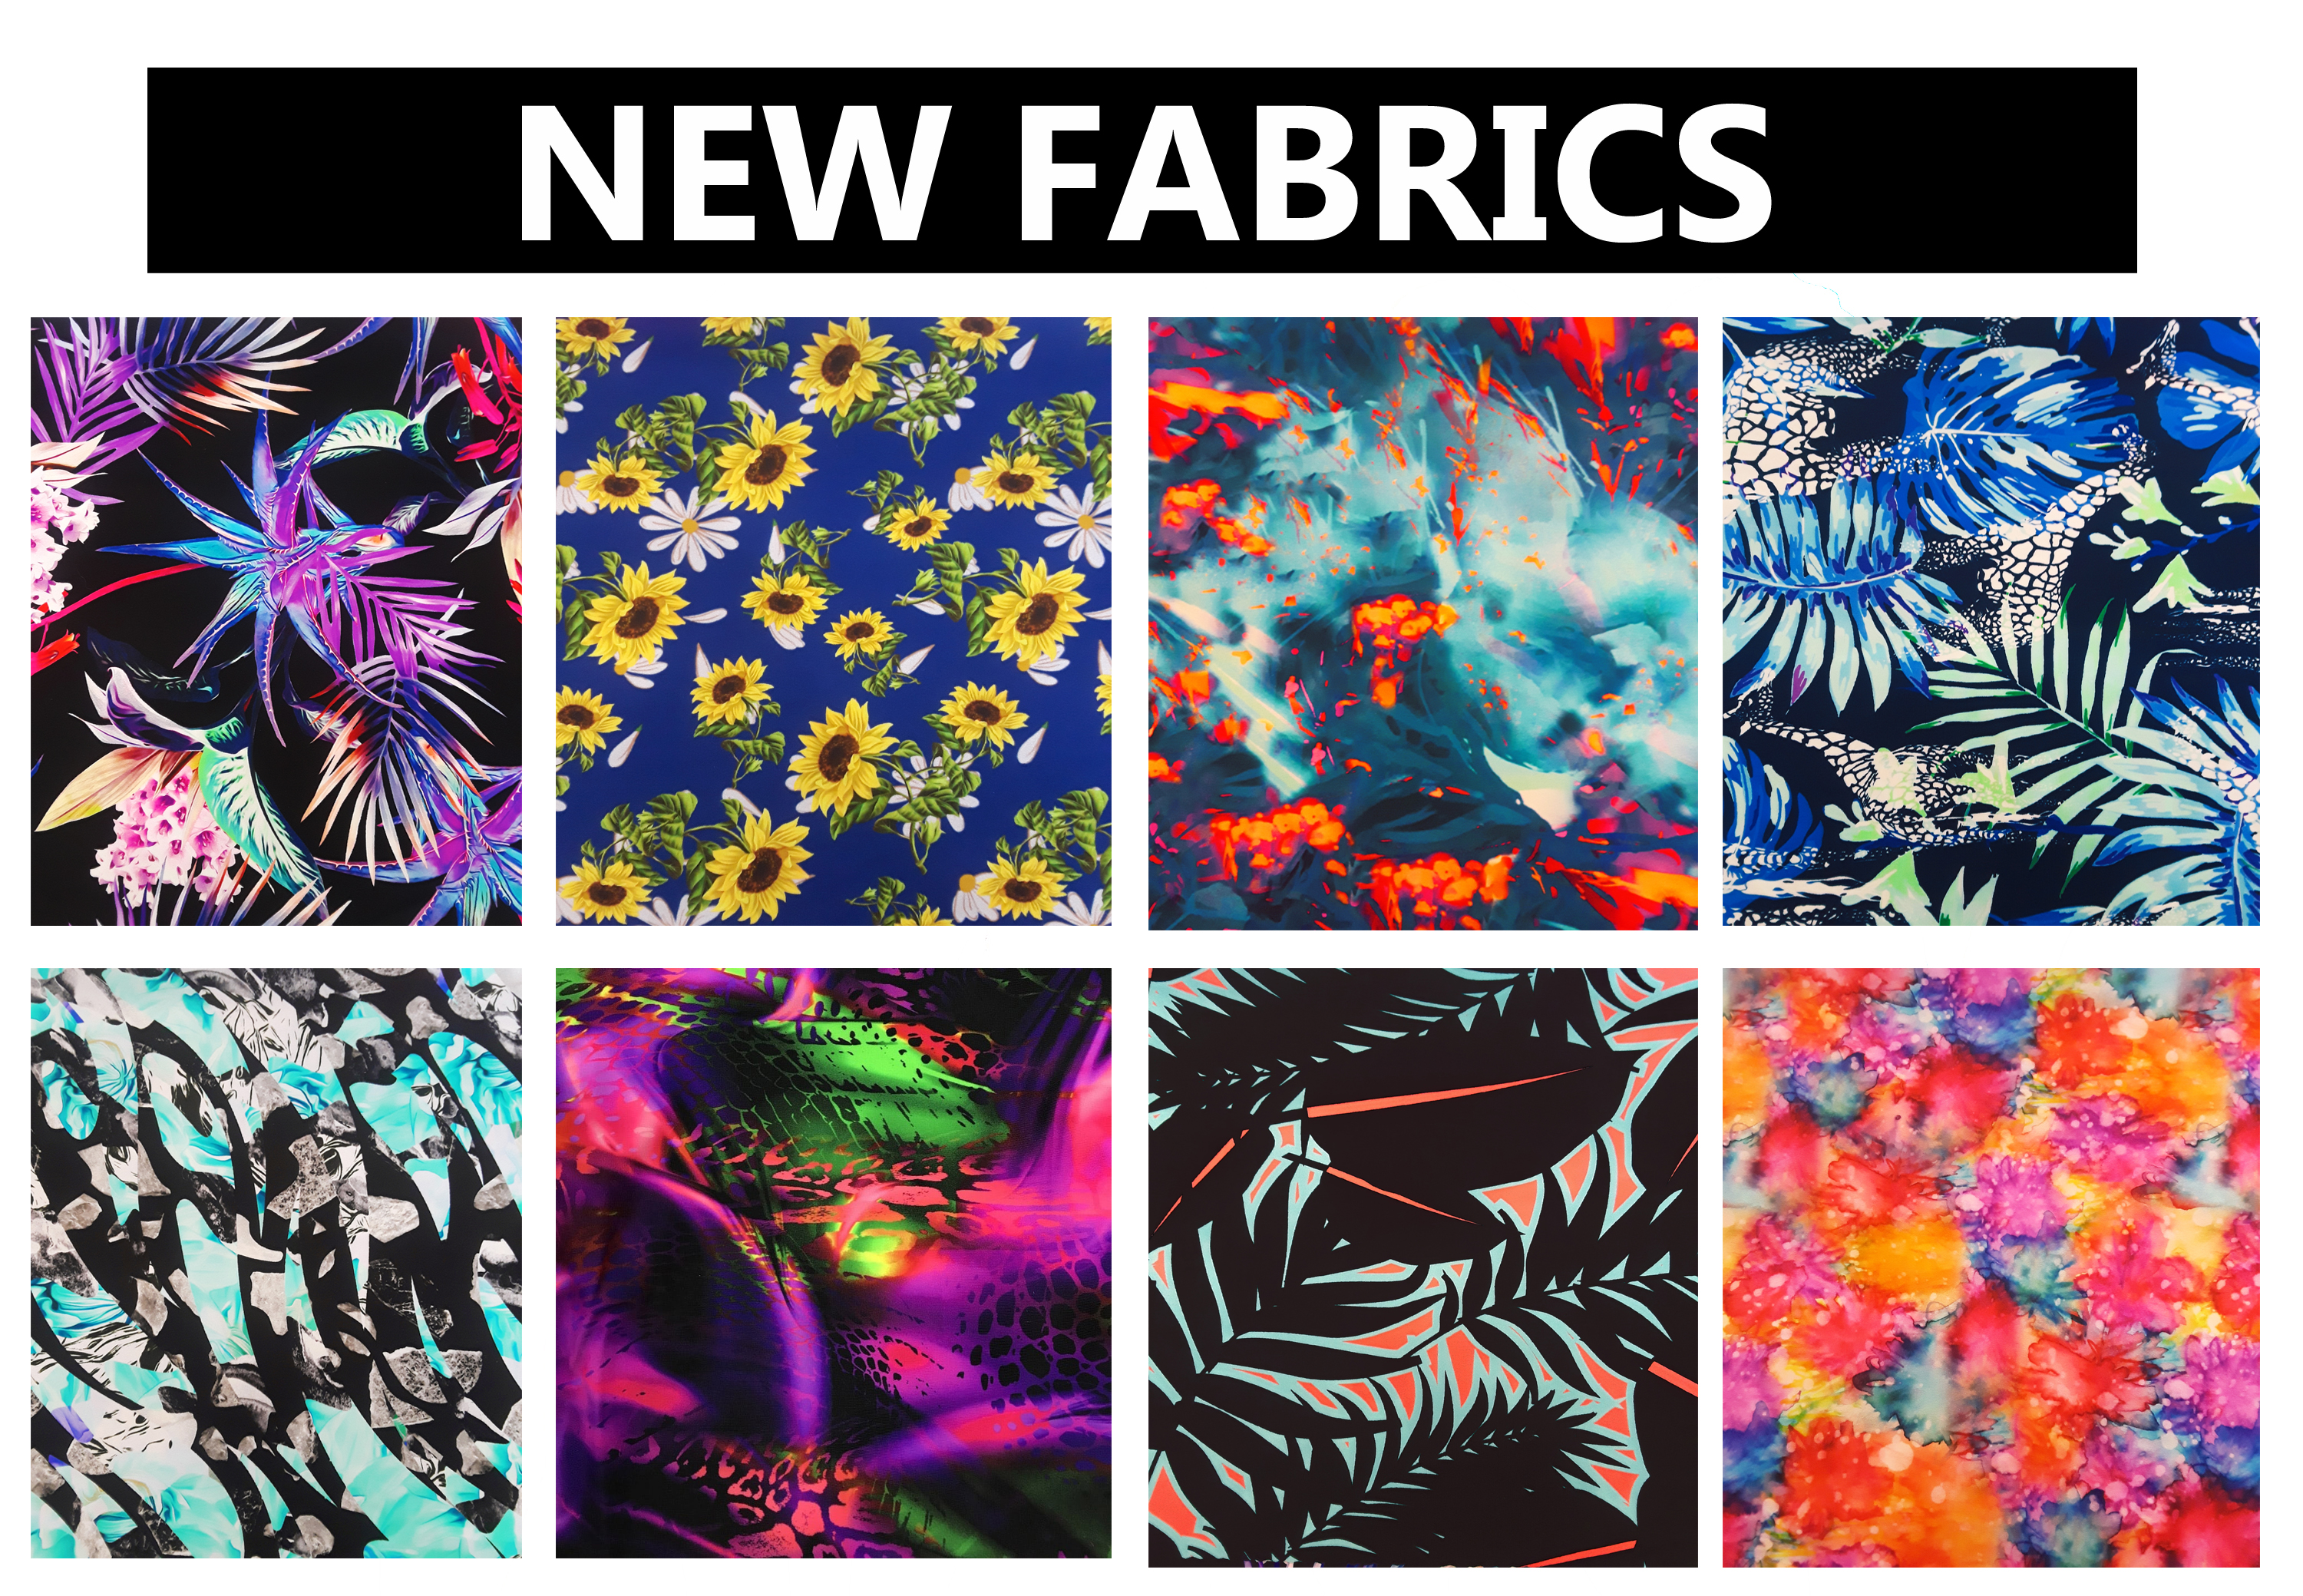 ad-for-new-2019-fabrics.jpg